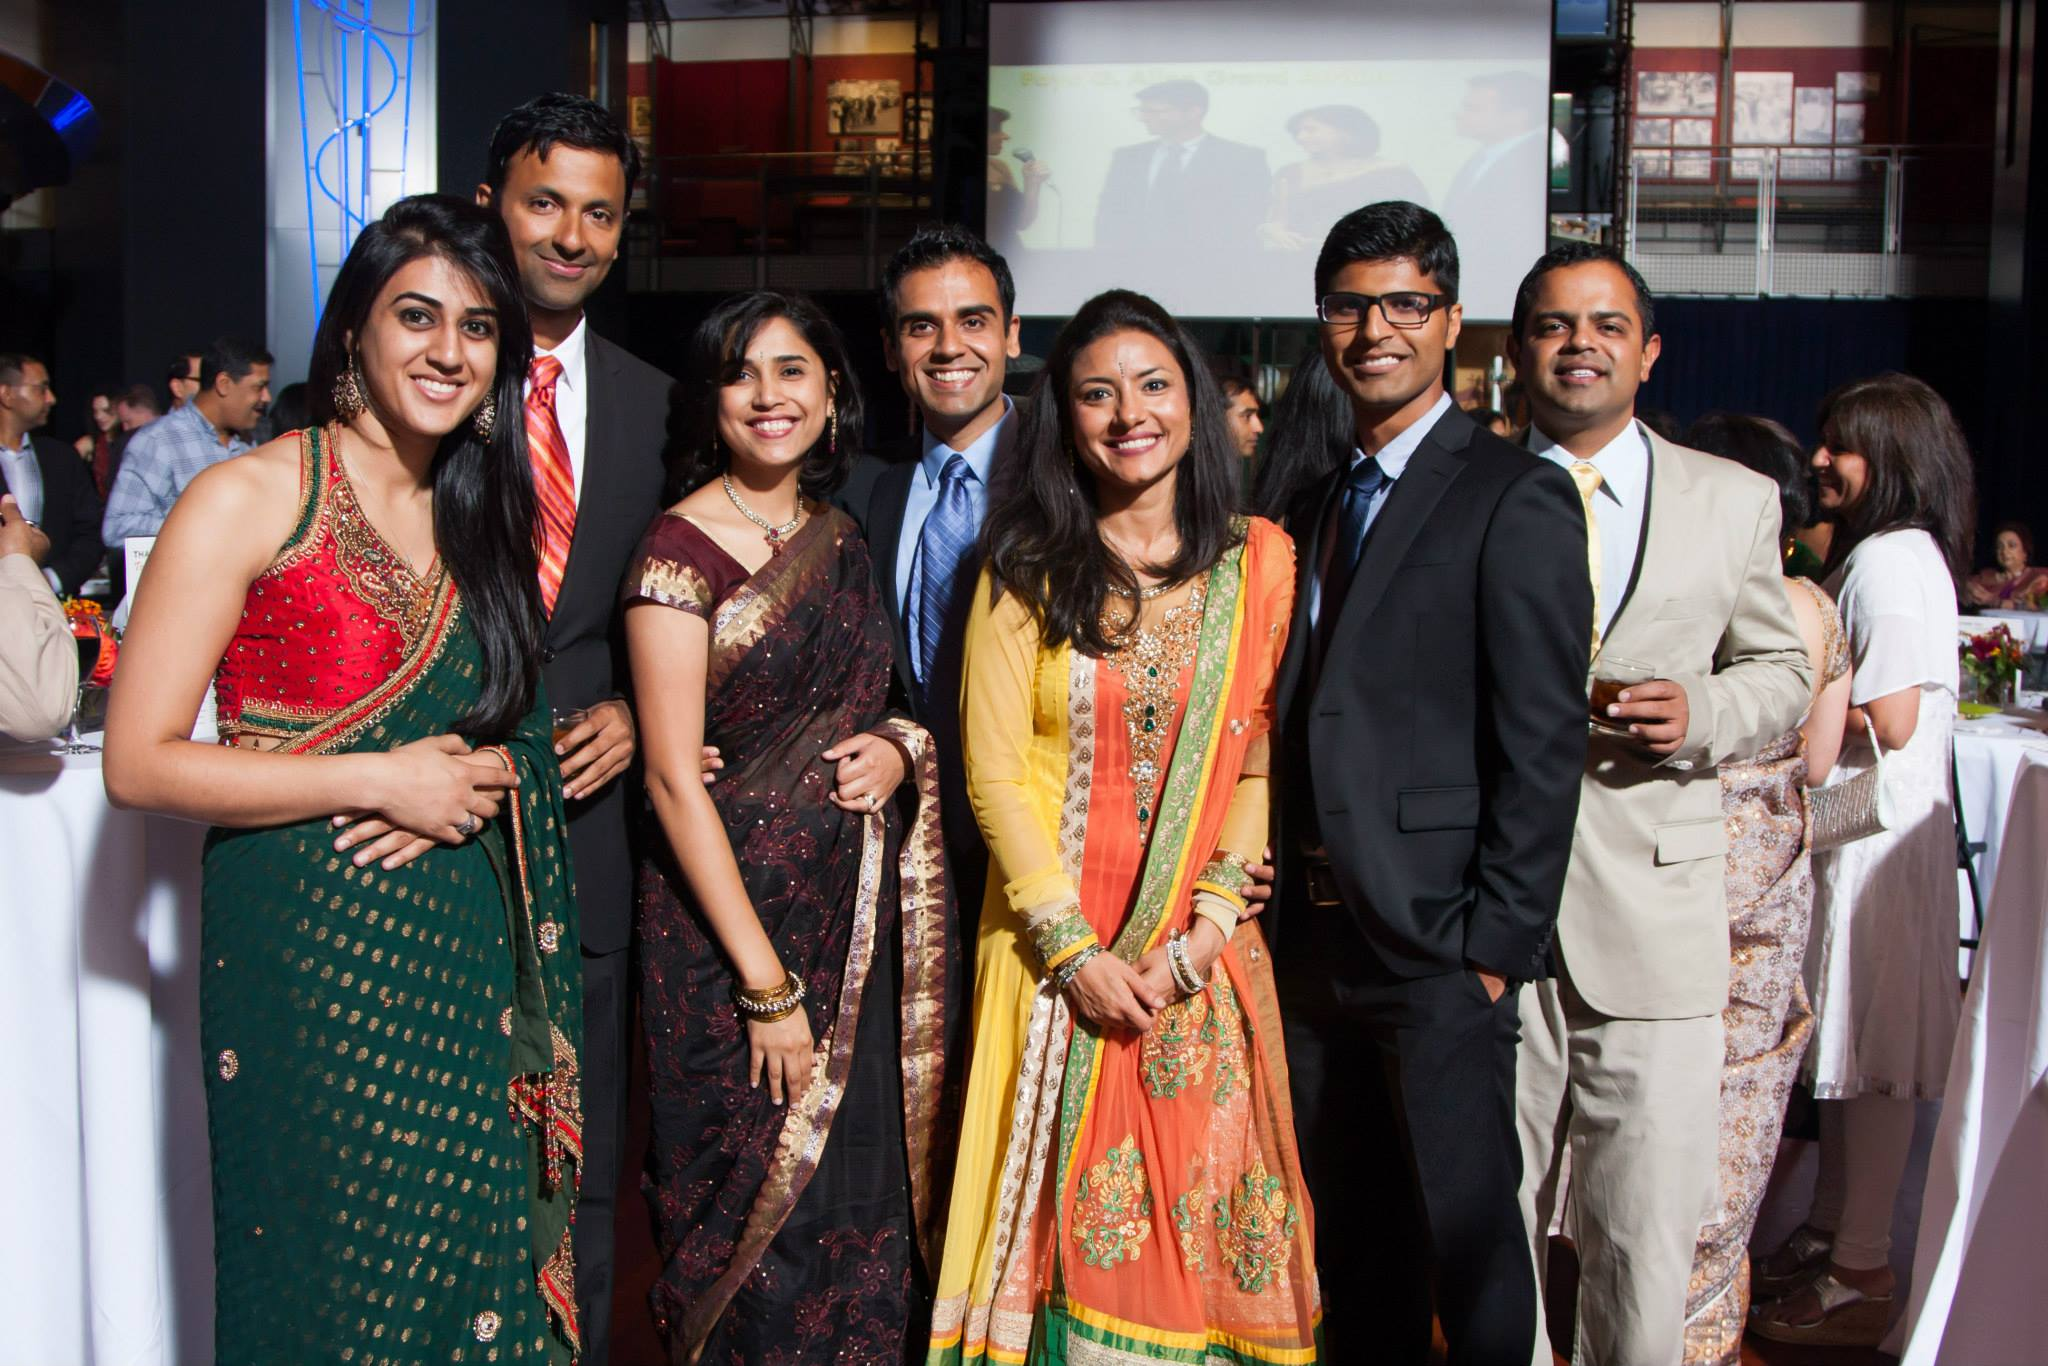 New Yorkers Celebrate The Possibilities For Education At the 2013 Pratham Gala